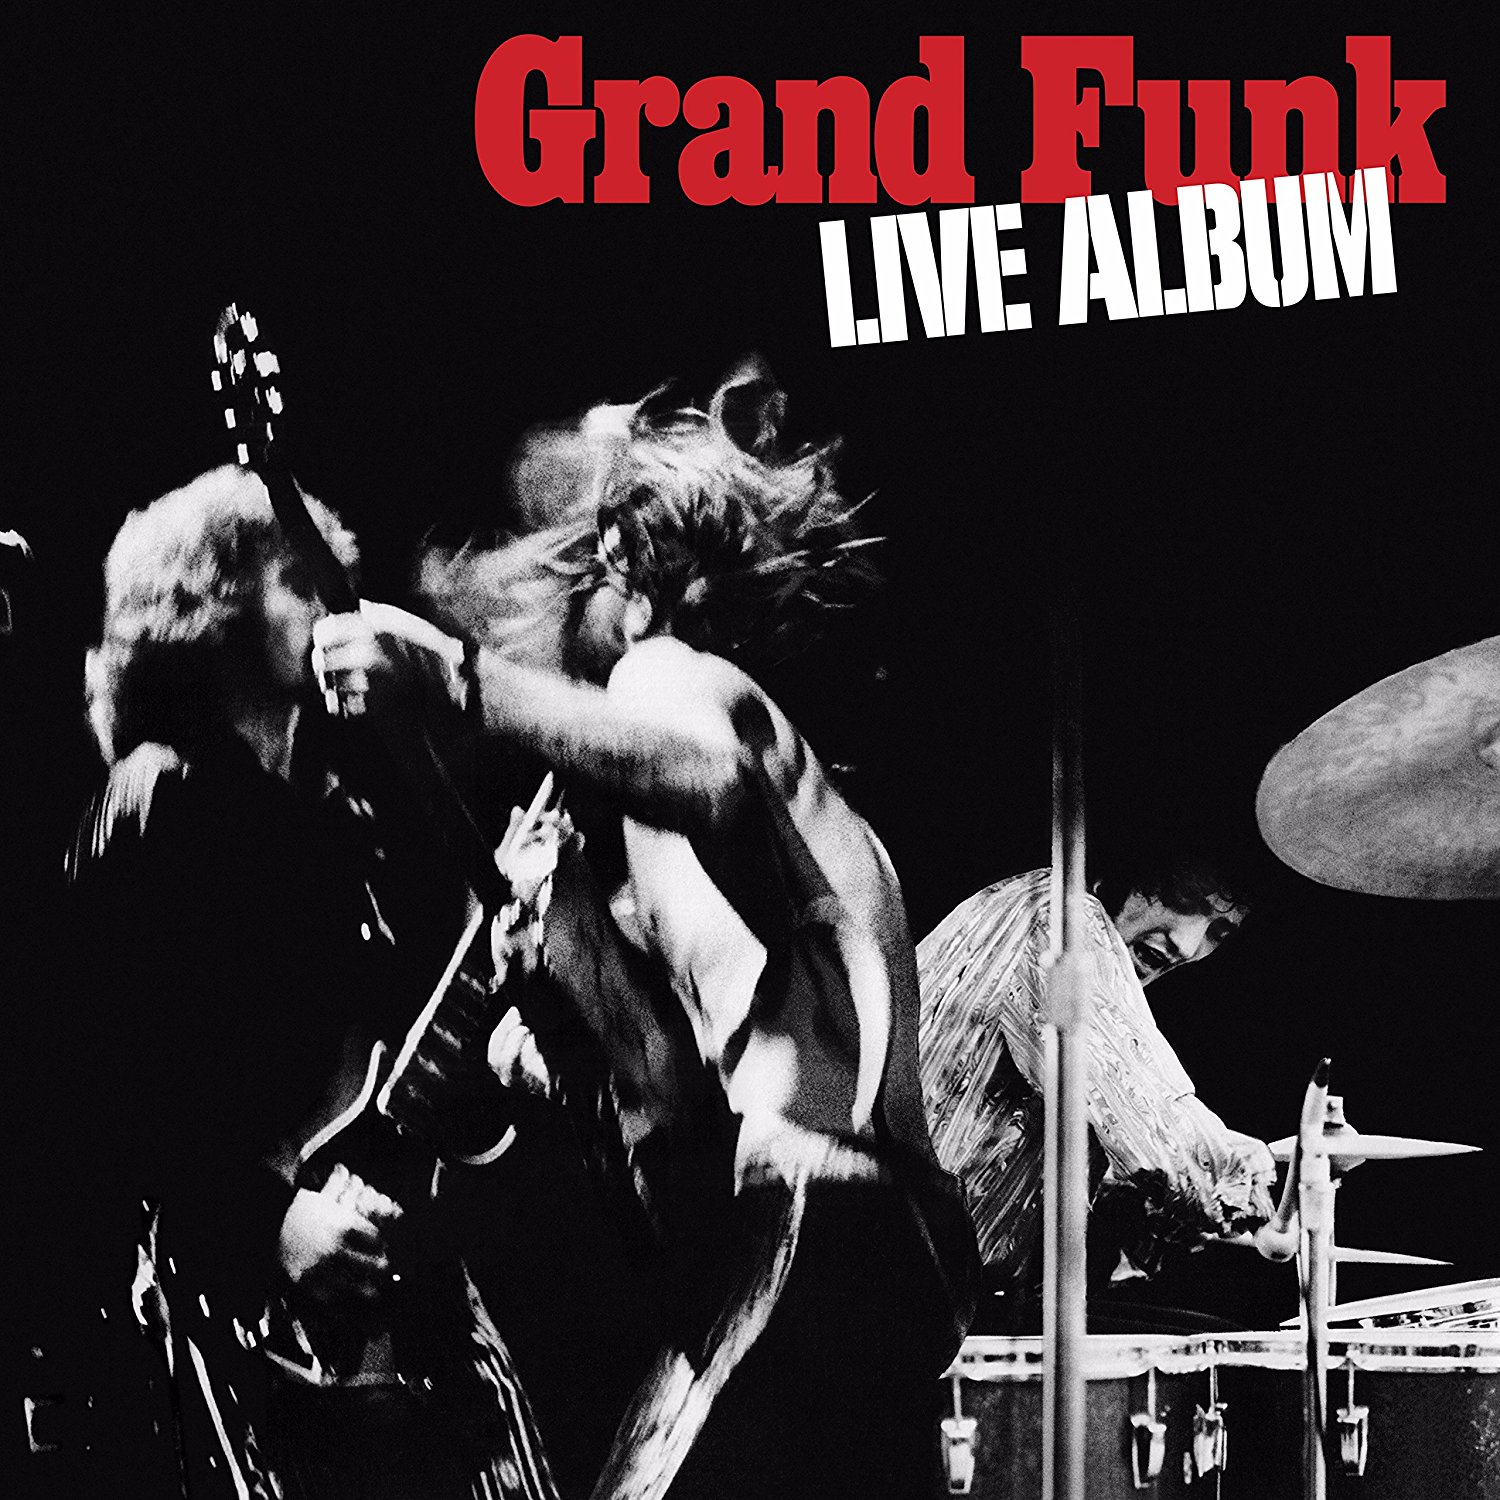 Grand Funk Railroad - Live Album (Audp) [Colored Vinyl] (Gate) [180 Gram] (Red) (Aniv)